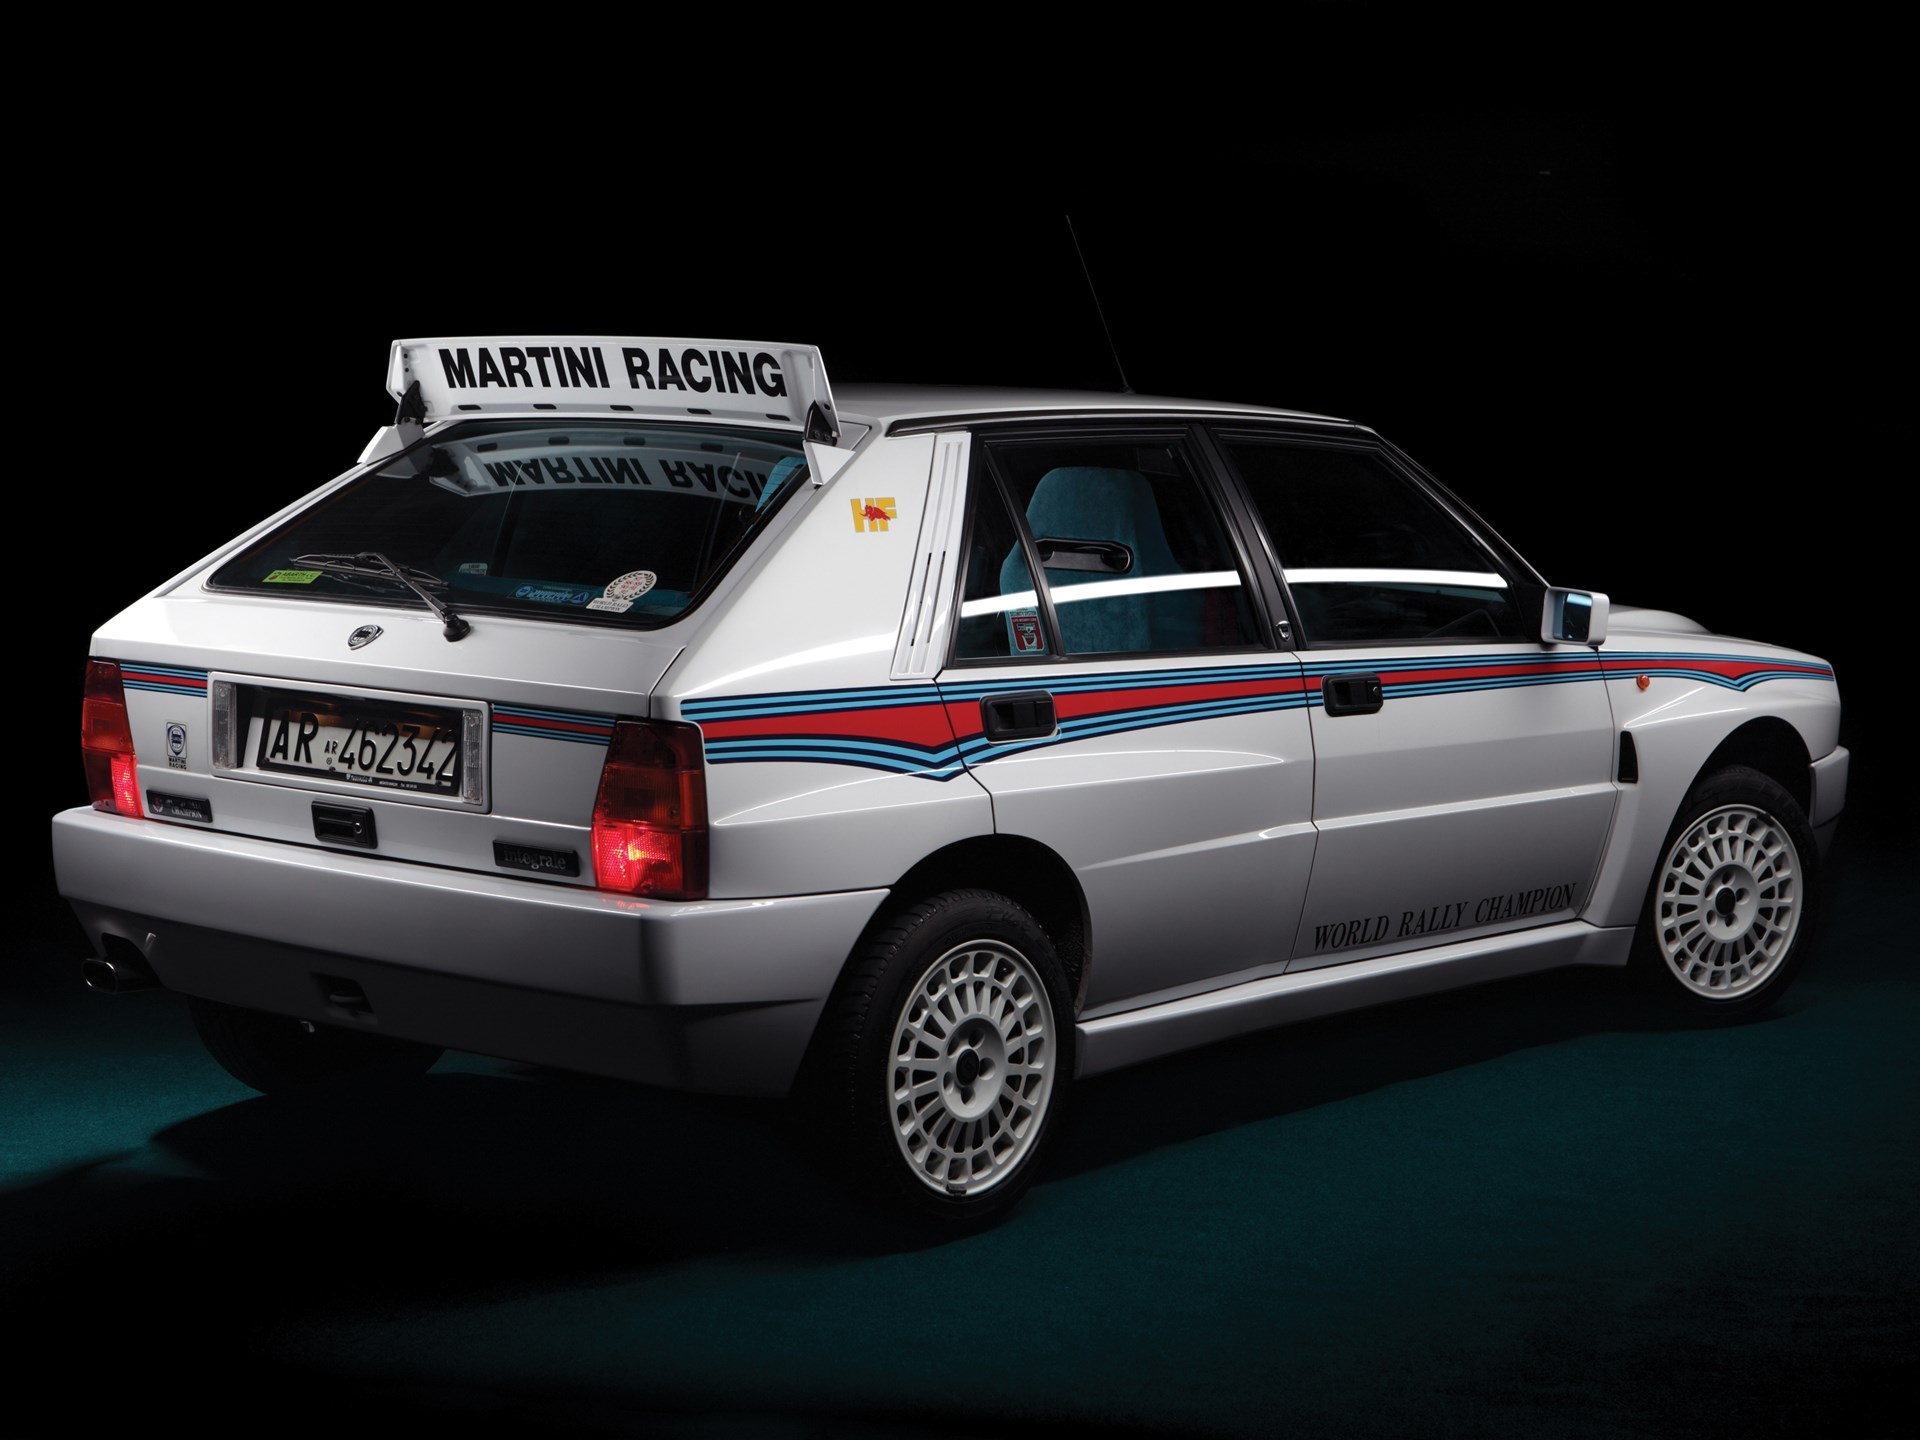 rm sotheby 39 s 1992 lancia delta hf integrale evoluzione 1 39 martini 6 39 paris 2016. Black Bedroom Furniture Sets. Home Design Ideas